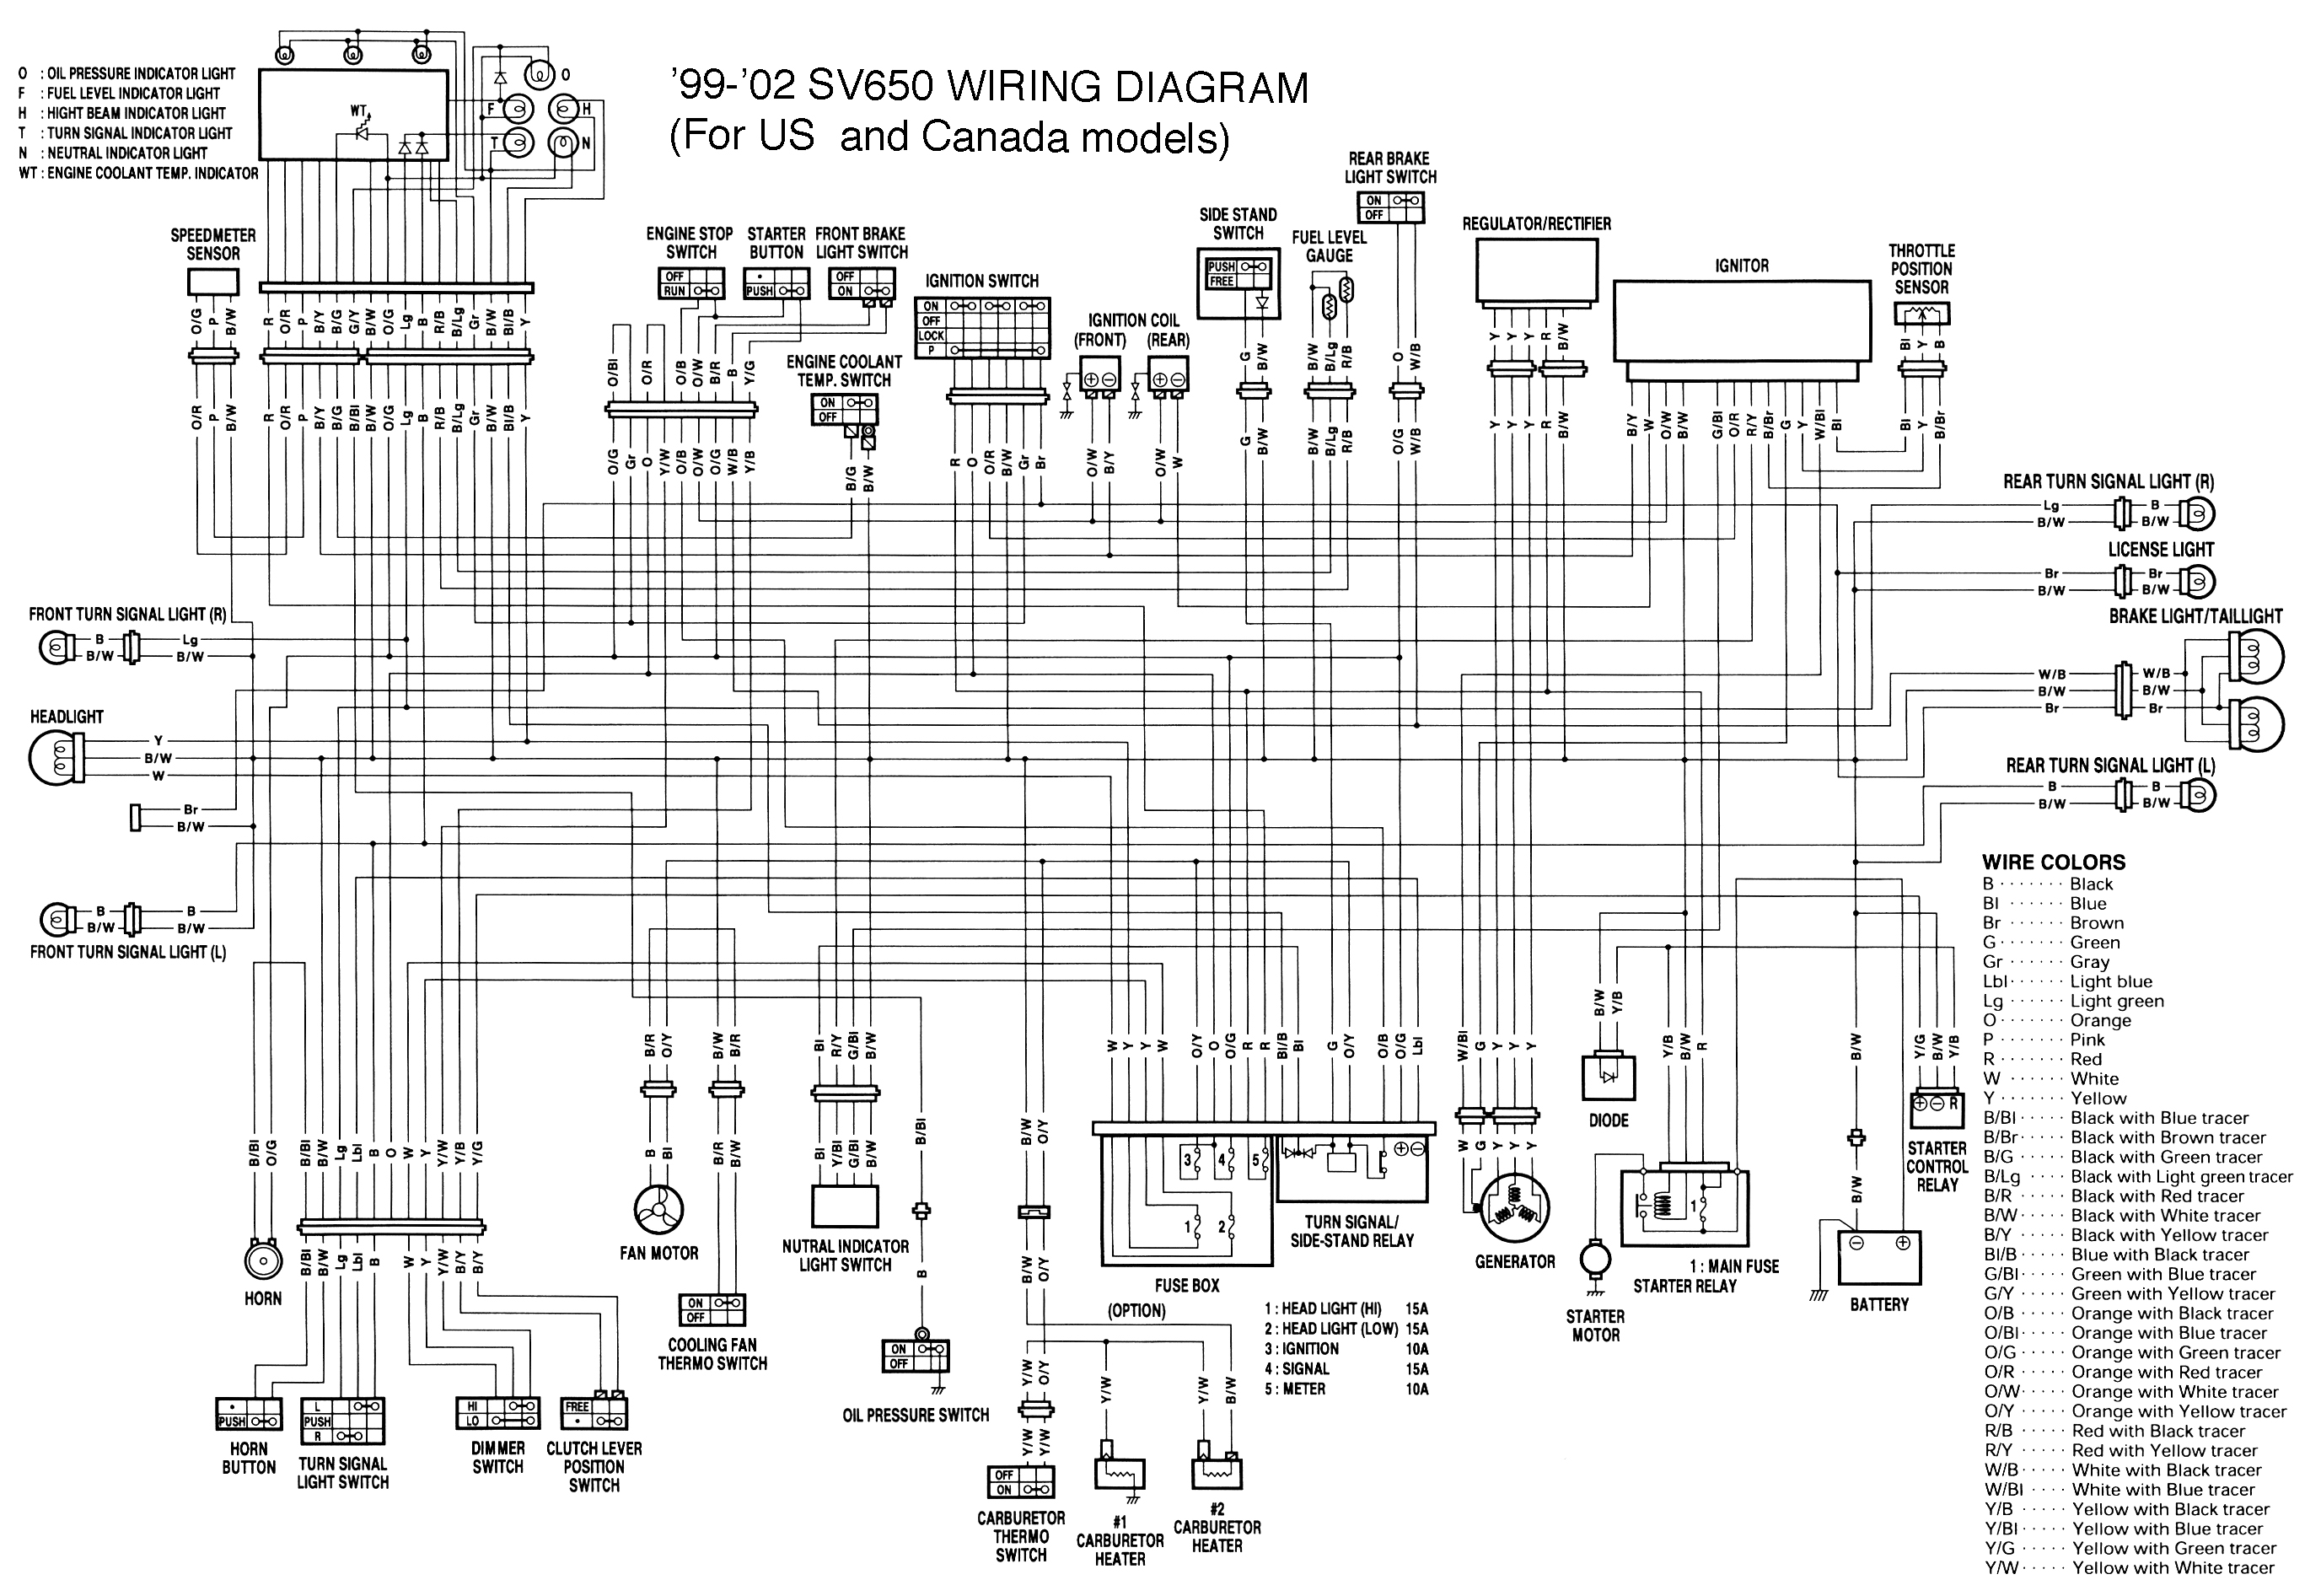 99 02 sv650 wiring diagram ignition switch and obd live data index of milktree sv